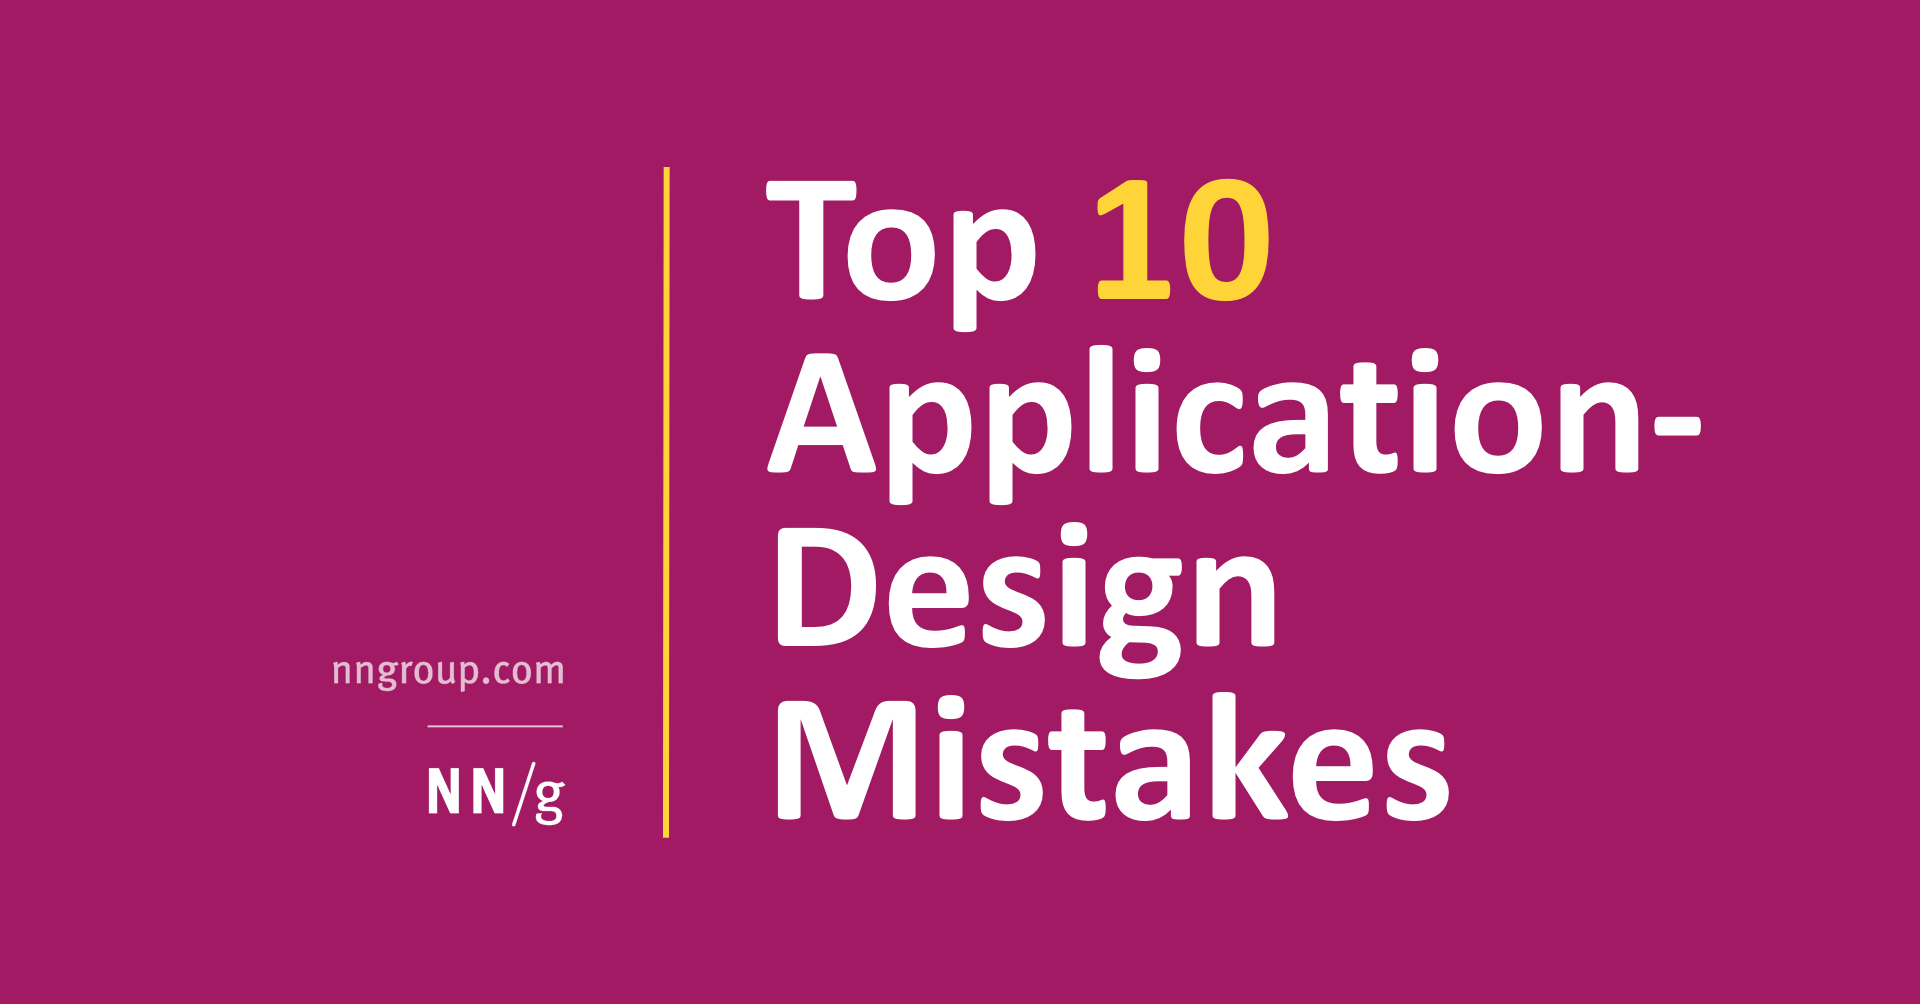 Top 10 Application Design Mistakes